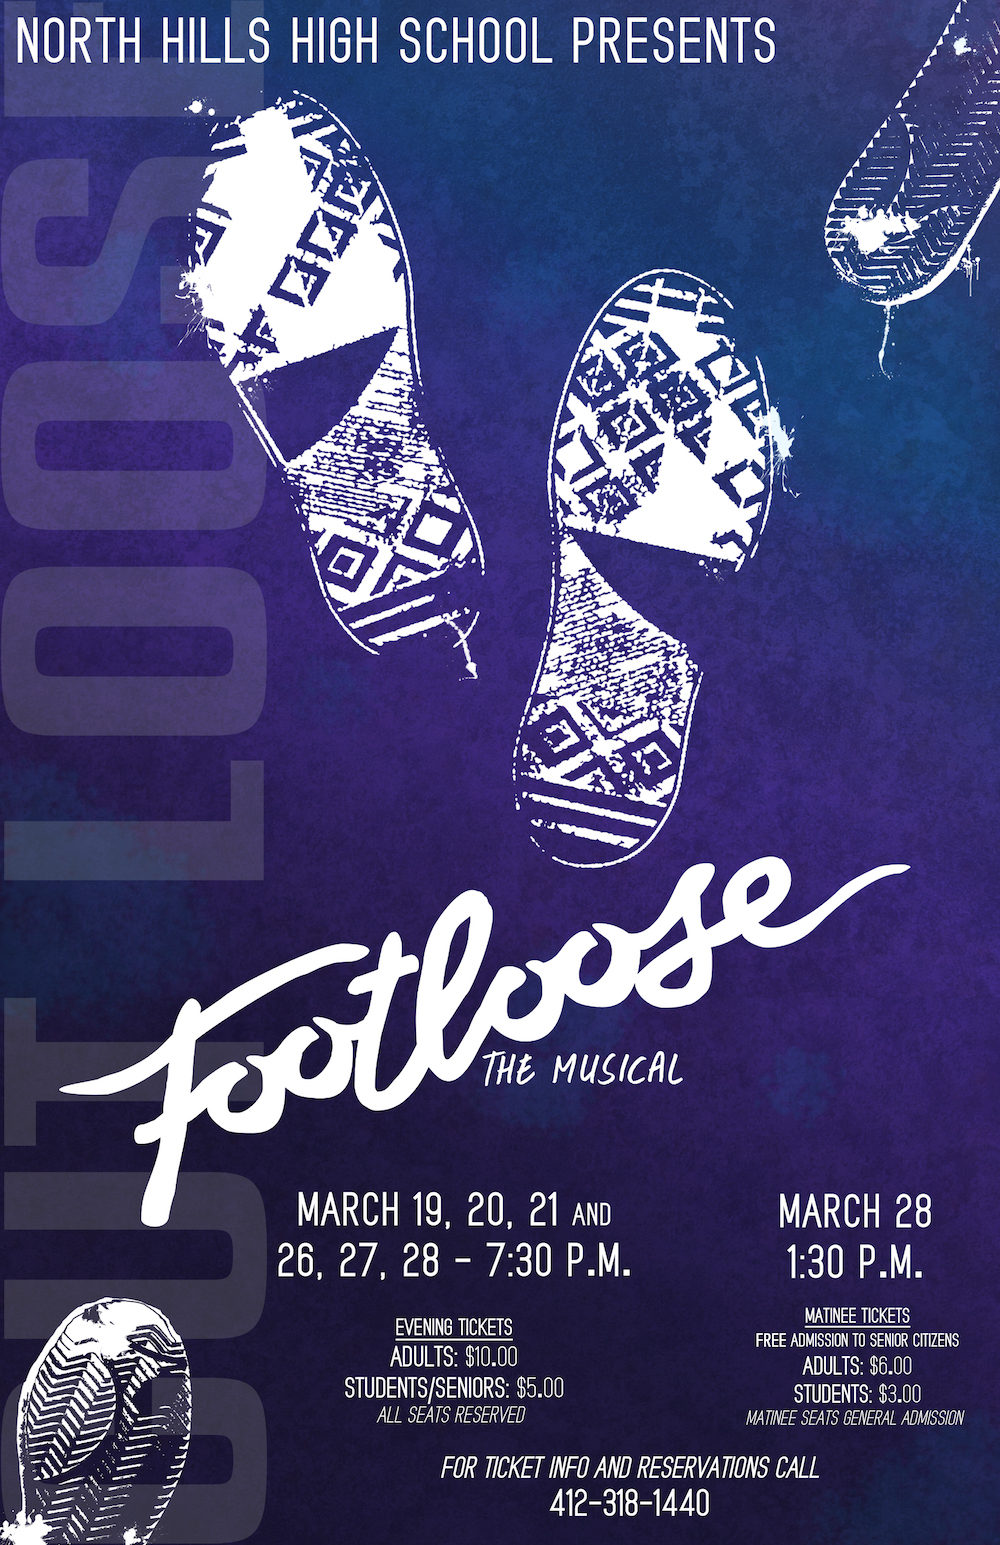 Footloose Poster 11x17.jpg